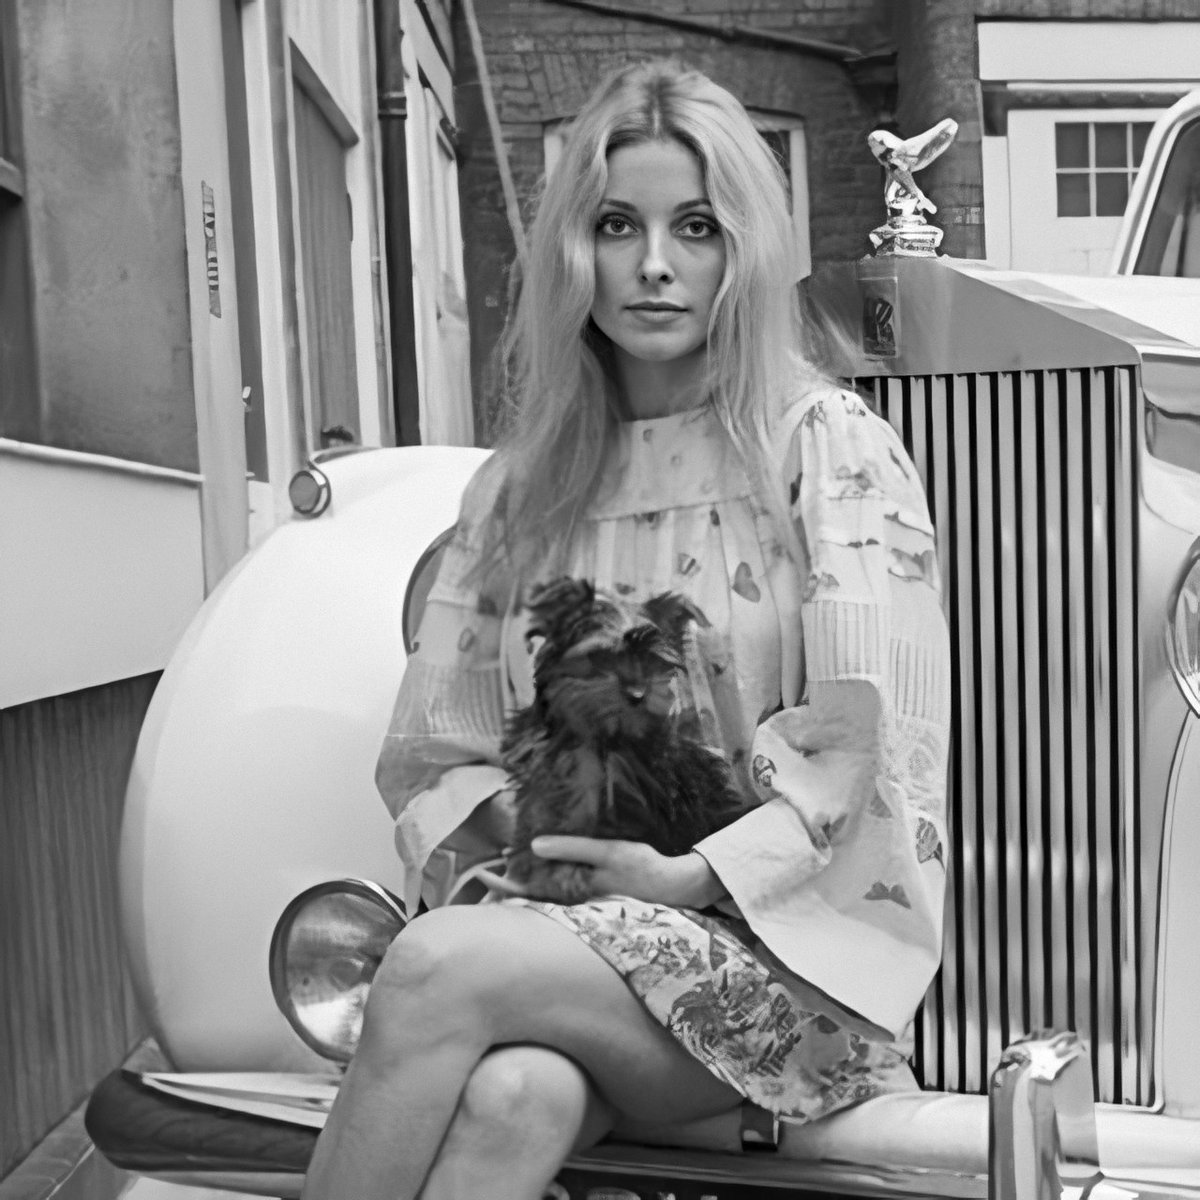 #SharonTate photographed in July, 1969 by #TerryONeill with Prudence, her #YorkshireTerrier puppy, and #RollsRoyce.  Dress was designed by #GlenofMichigan.pic.twitter.com/hxYMJBXCWI